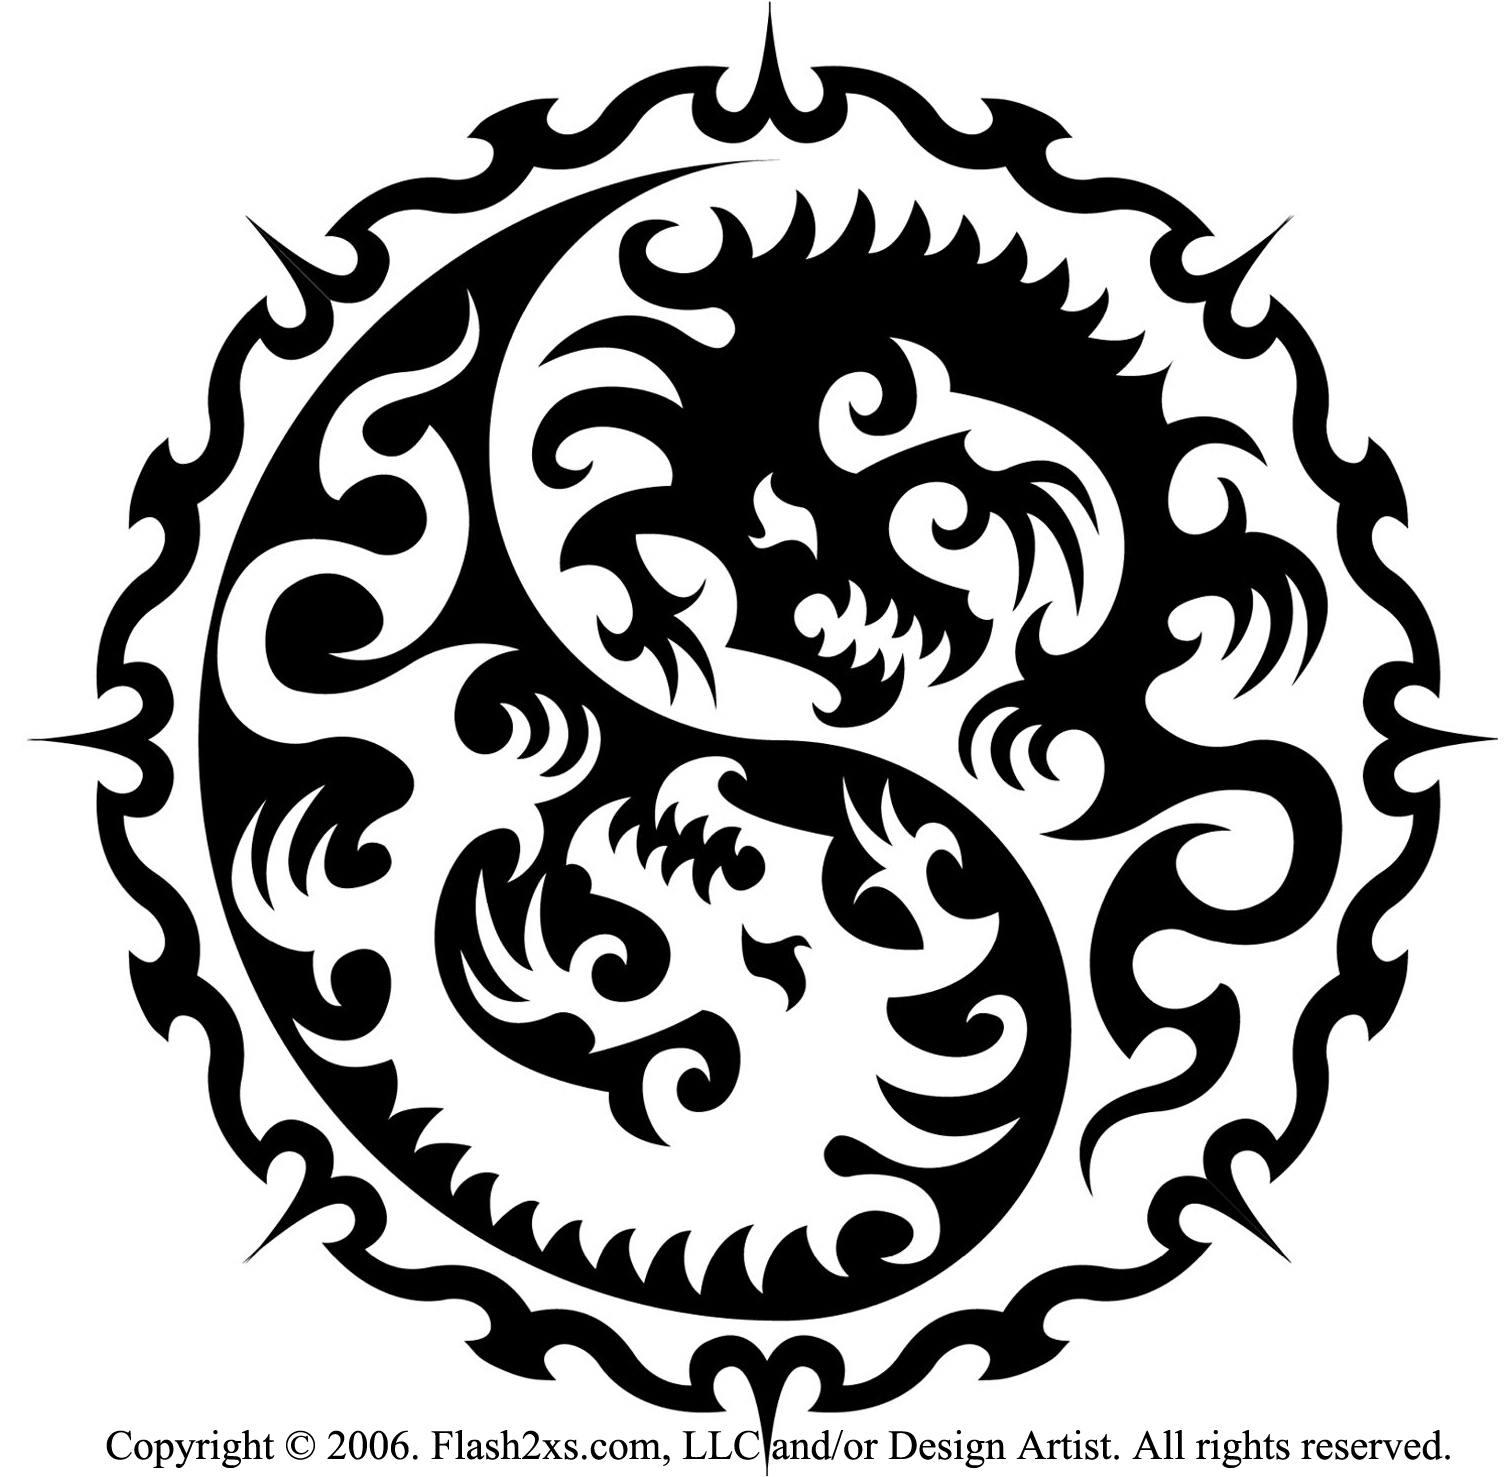 ... com Announces Tribal Tattoos as 'Most Popular Tattoo Designs of 2006